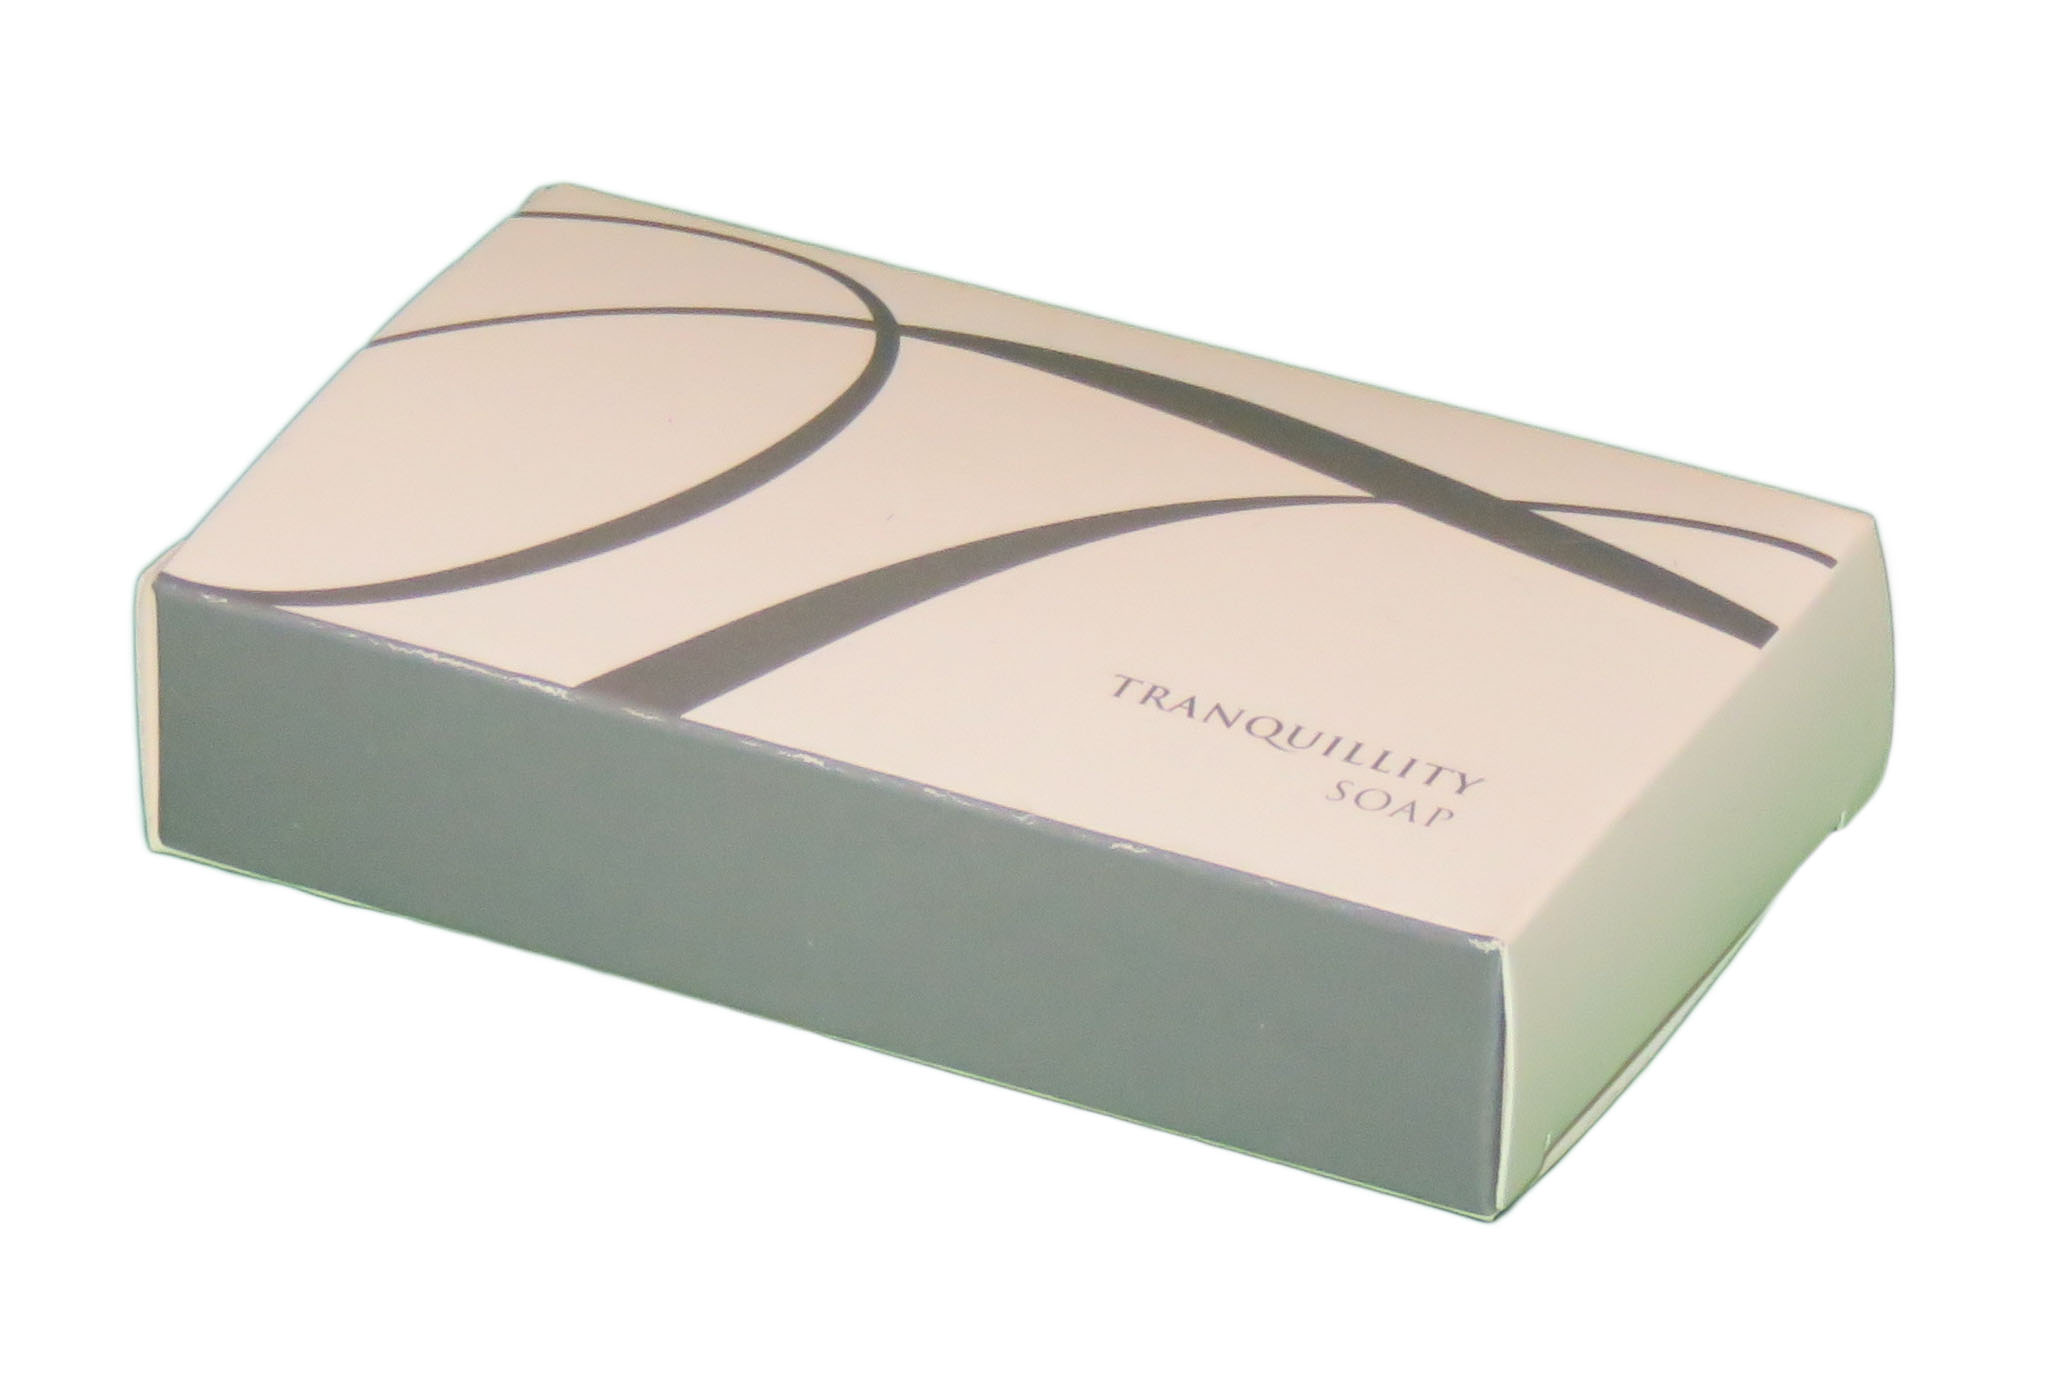 Tranquillity Boxed Guest Soap